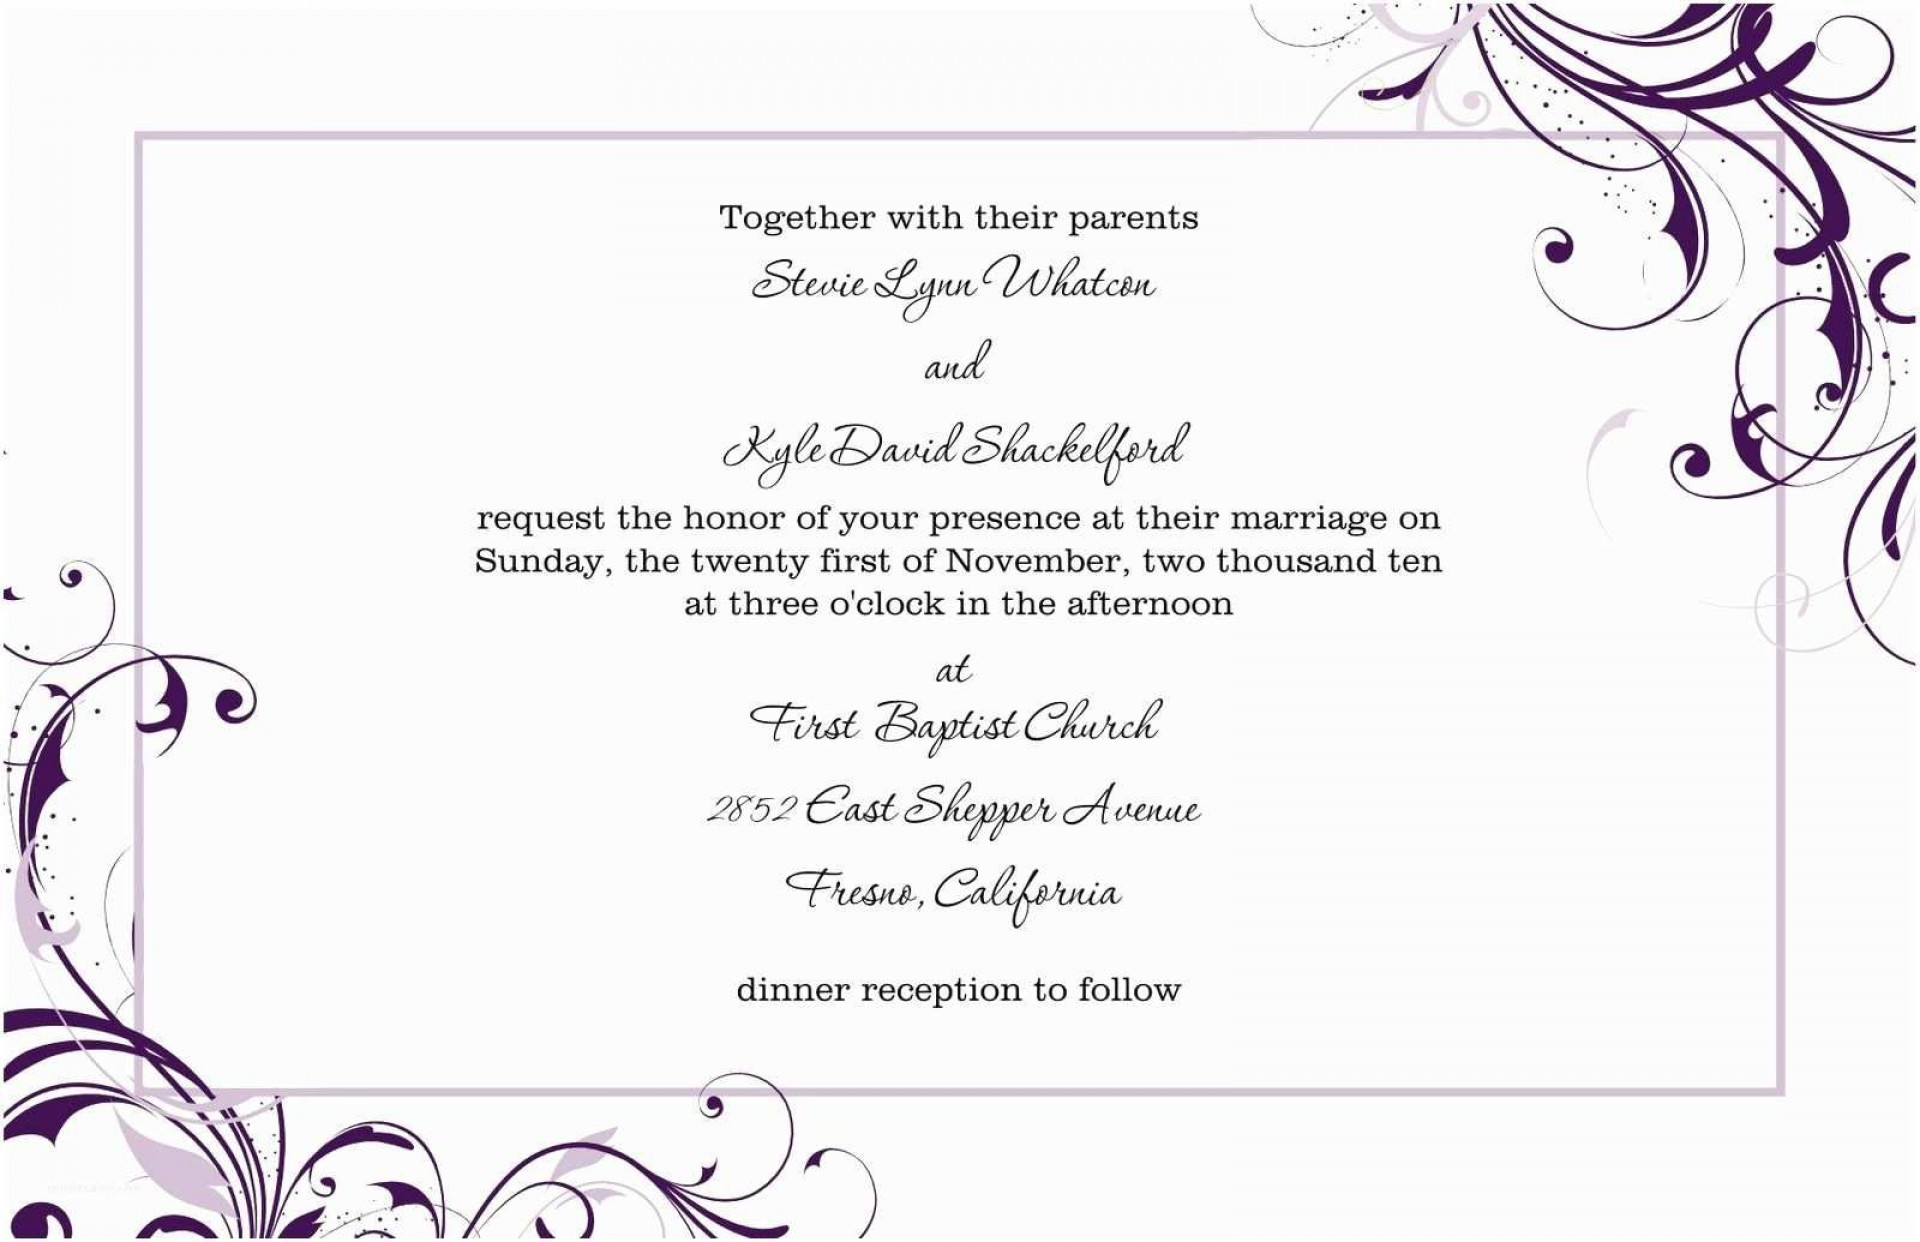 008 Stunning Free Email Invitation Template Image  Ecard Wedding Party Invite For Outlook1920